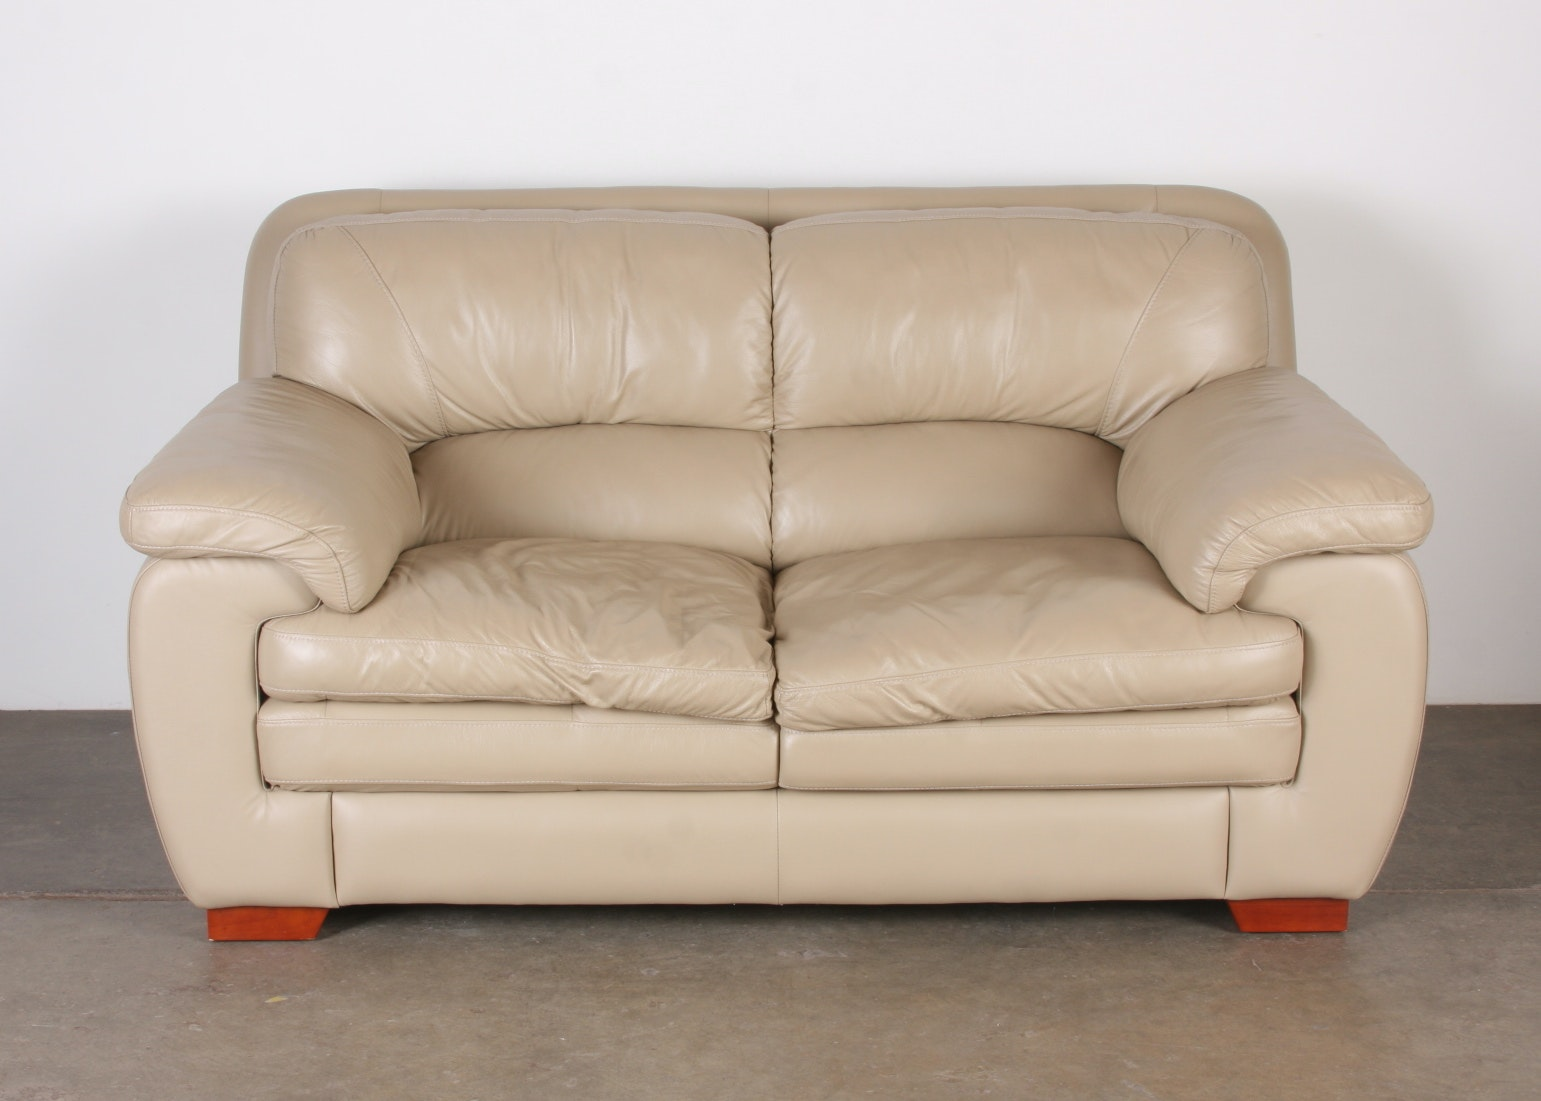 Awesome Leather Loveseat By Superb Creations ...